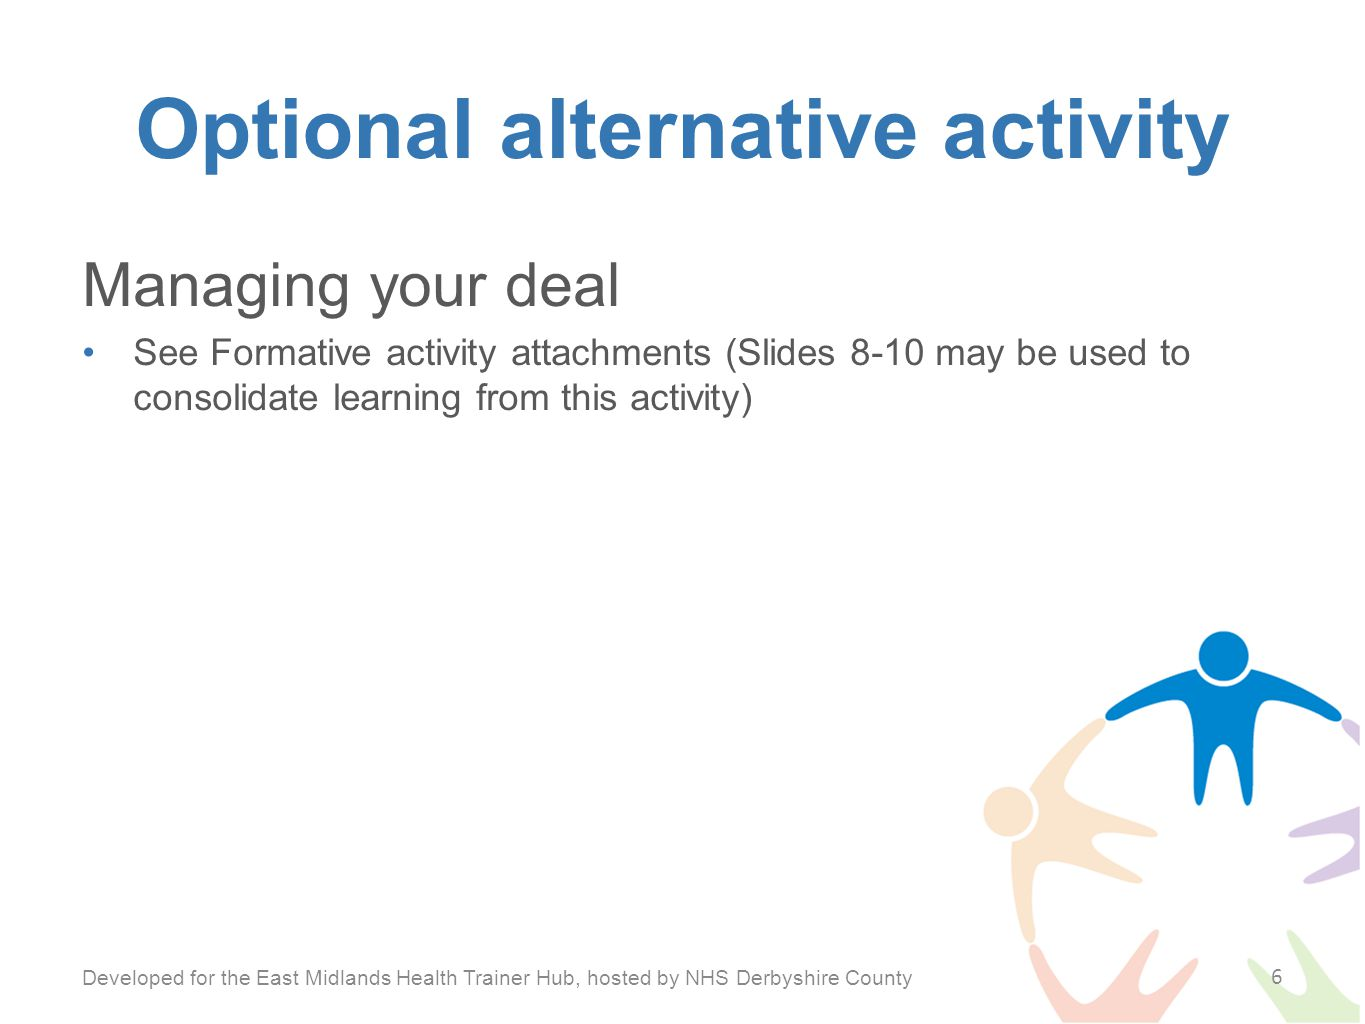 Optional alternative activity Managing your deal See Formative activity attachments (Slides 8-10 may be used to consolidate learning from this activity) Developed for the East Midlands Health Trainer Hub, hosted by NHS Derbyshire County 6